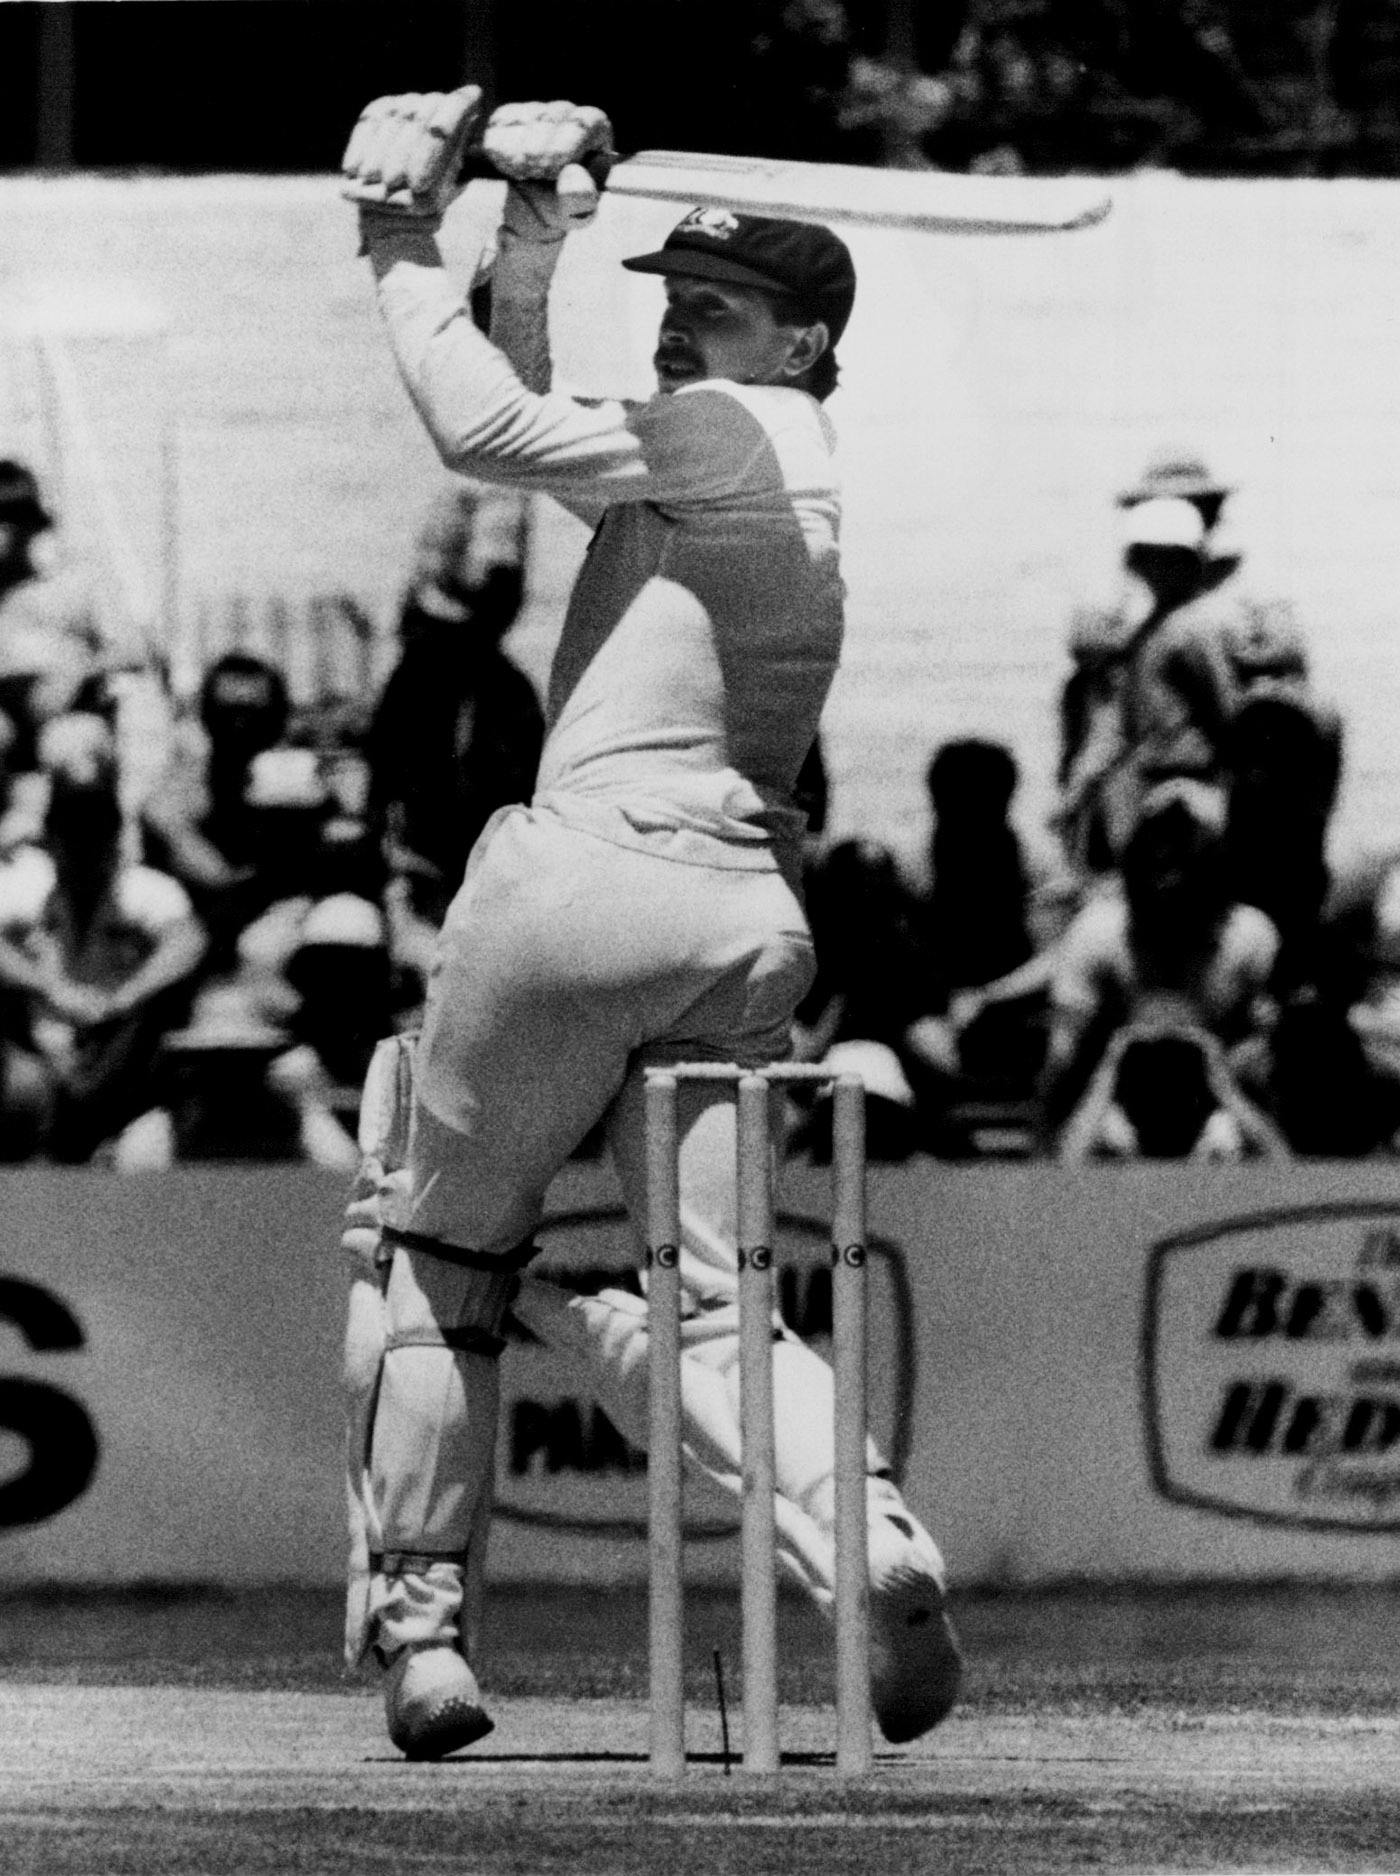 Laird hooks Pakistan's Sikander Bakht on his way to 85 at the WACA, his home ground, in 1981